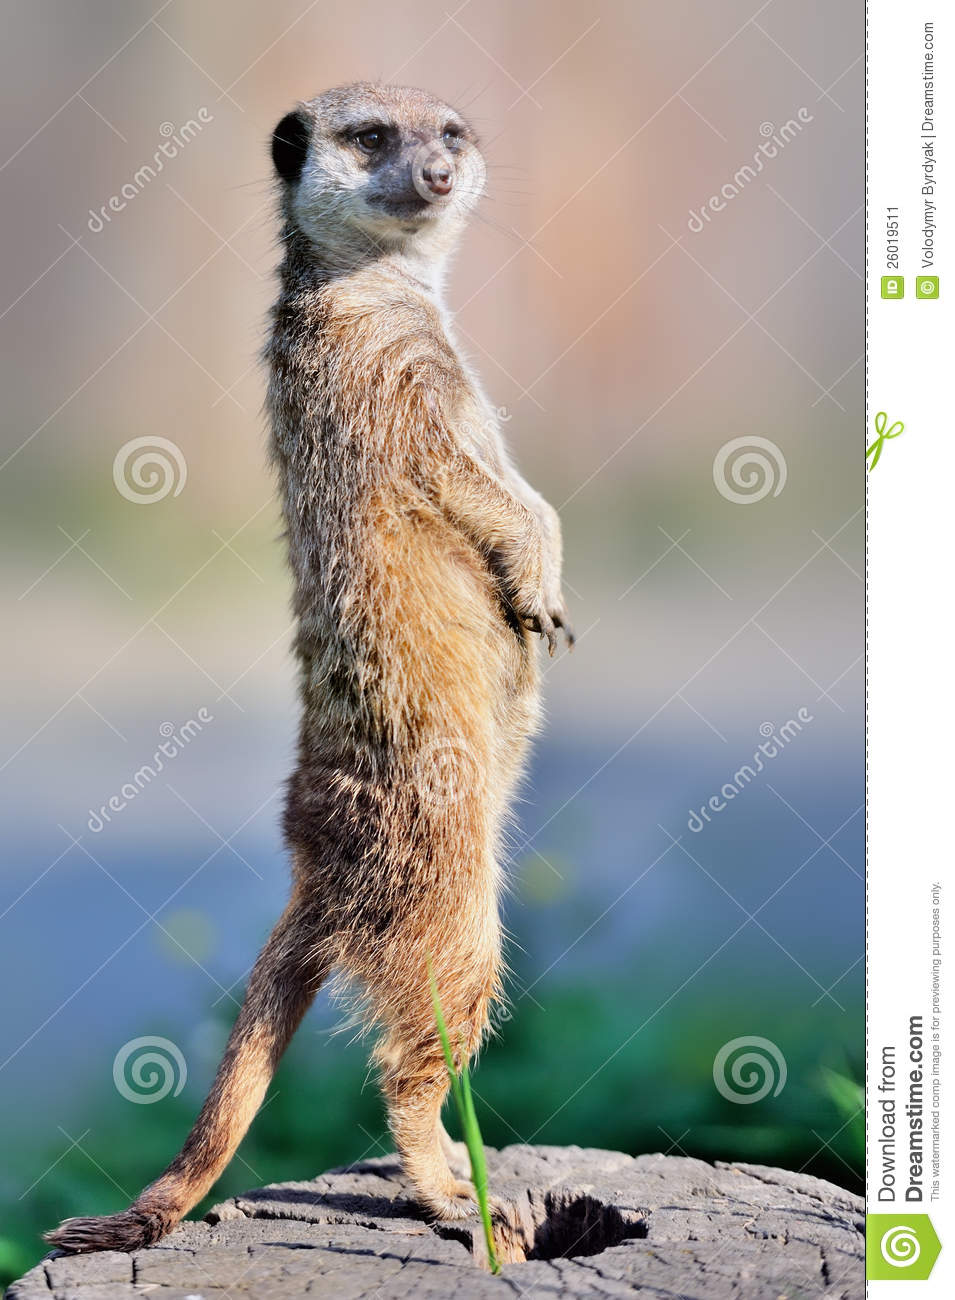 a meerkat standing upright stock image image 26019511 united states clip art government united states clip art image